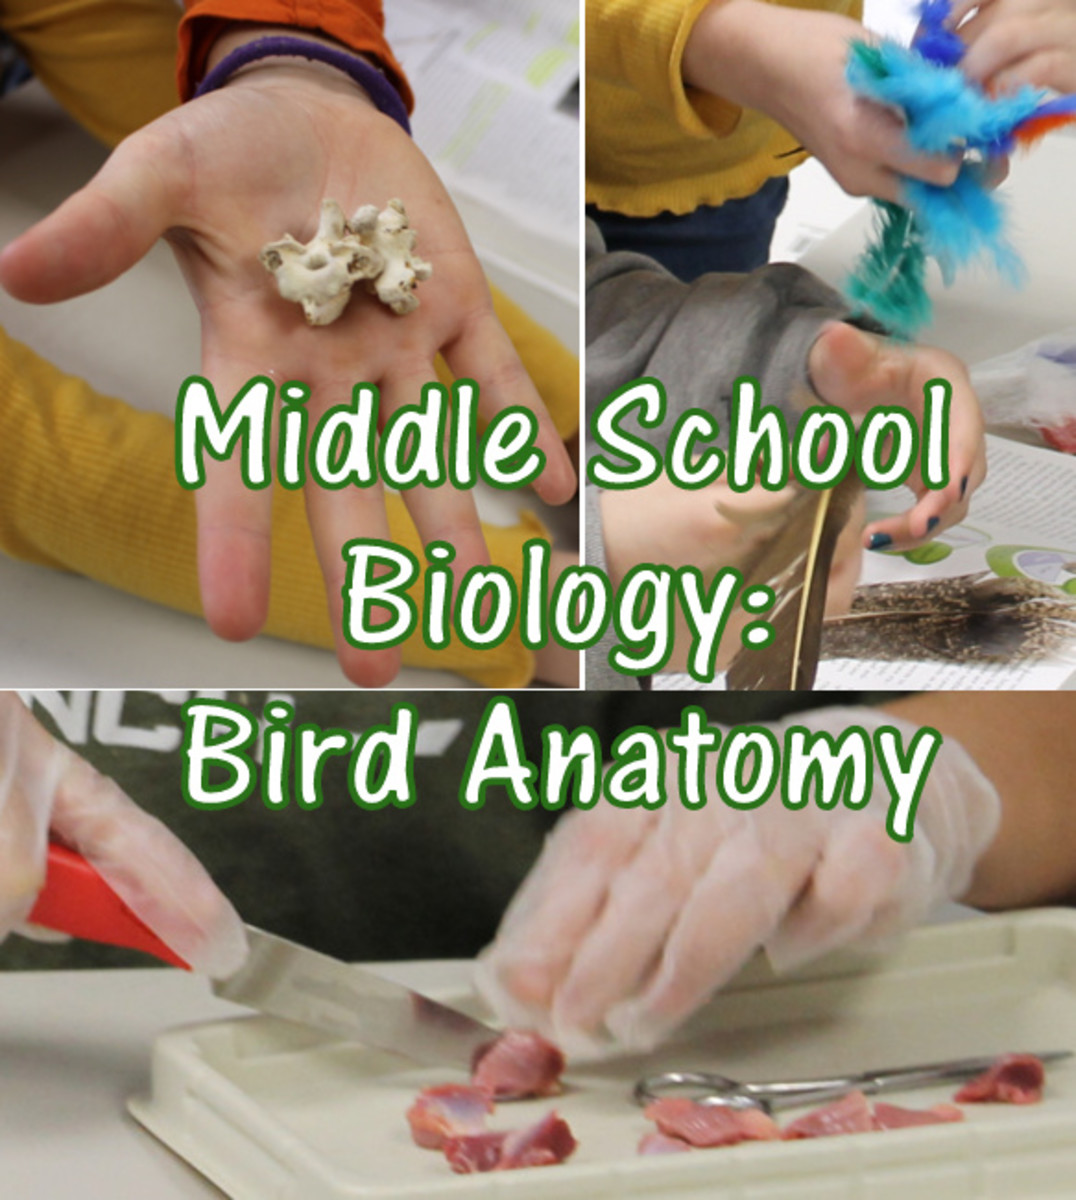 Bird Anatomy Lesson: A Middle School Biology Lesson